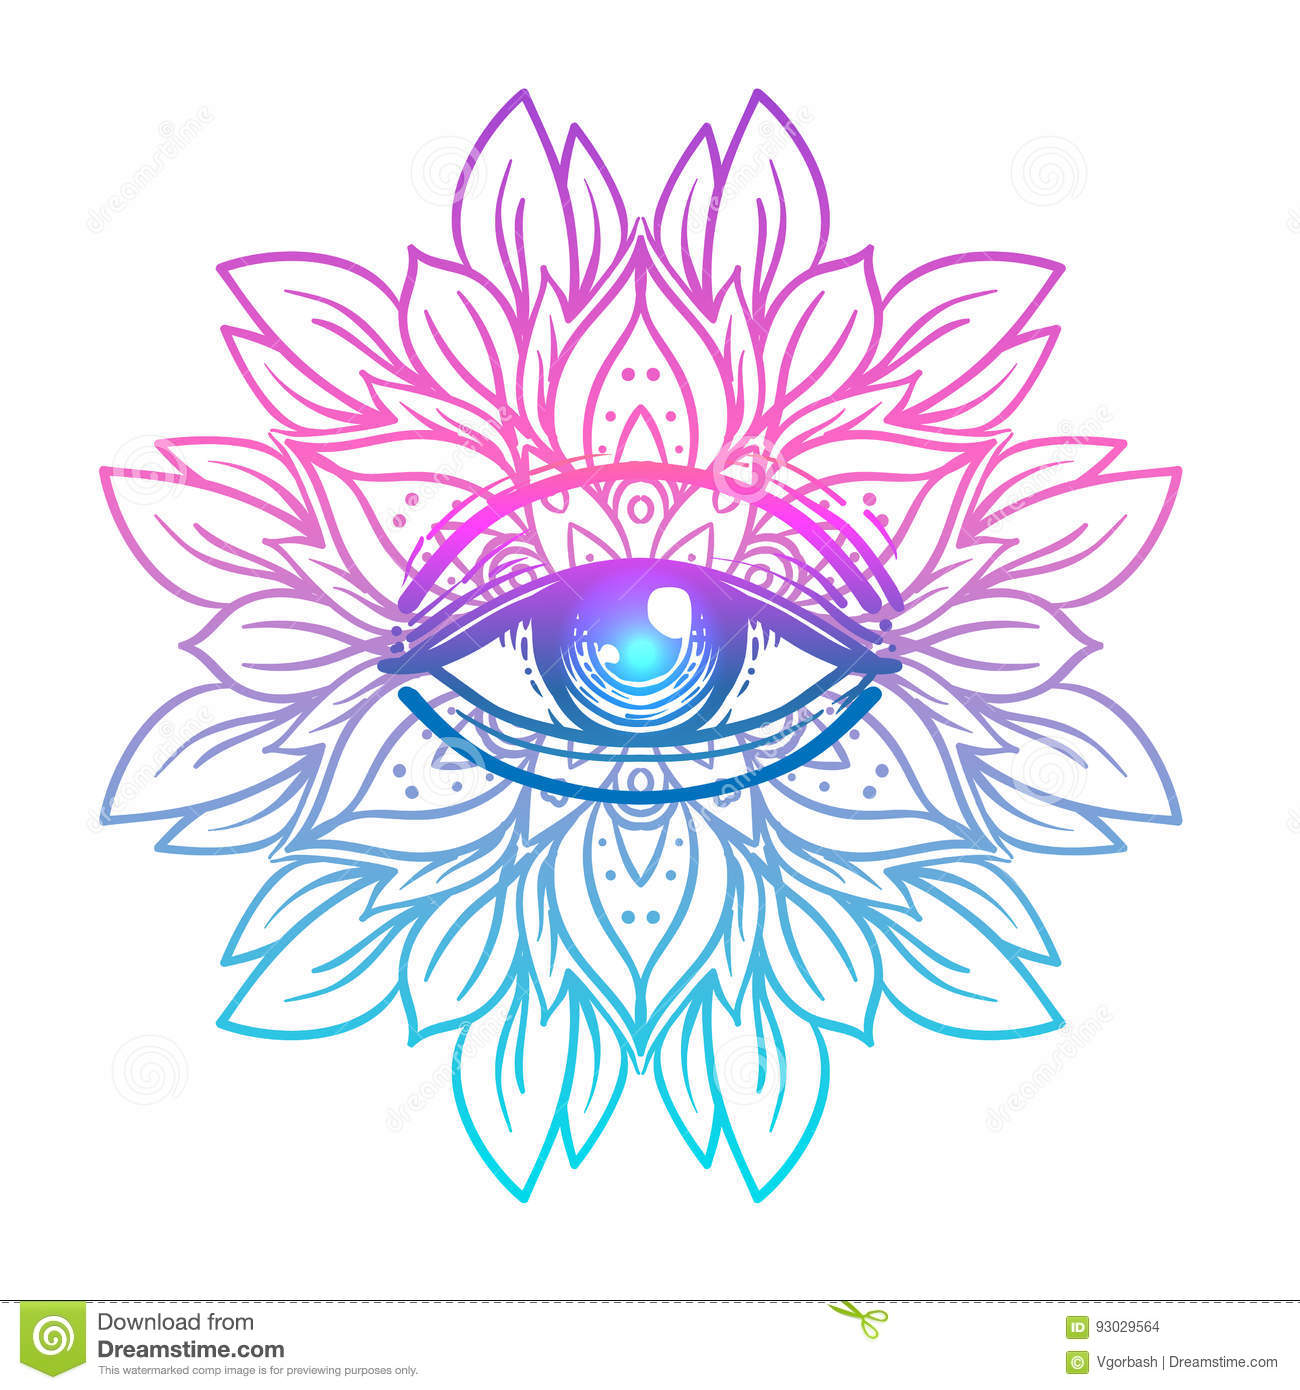 Sacred geometry symbol with all seeing eye in acid colors. Mystic, alchemy, occult concept. Design for indie music